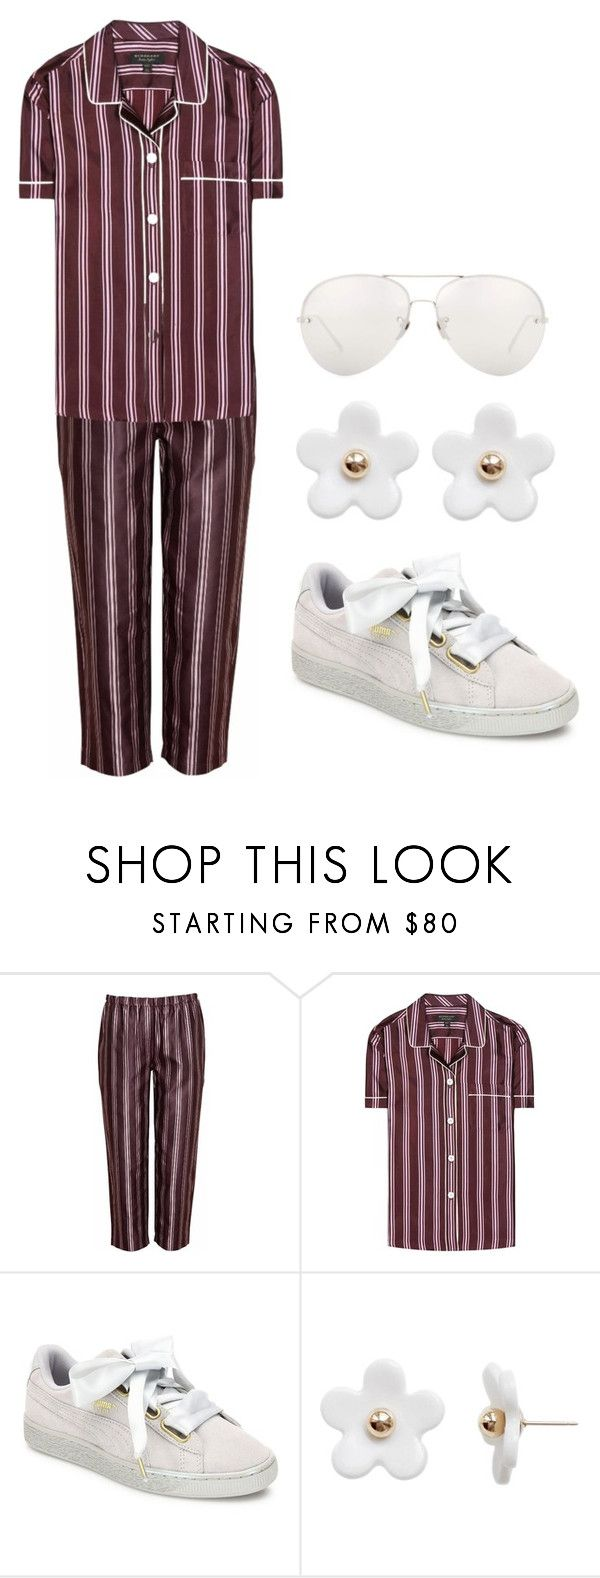 """Pajama all day"" by ale-pink5 ❤ liked on Polyvore featuring Burberry, Puma, Poporcelain and Linda Farrow"